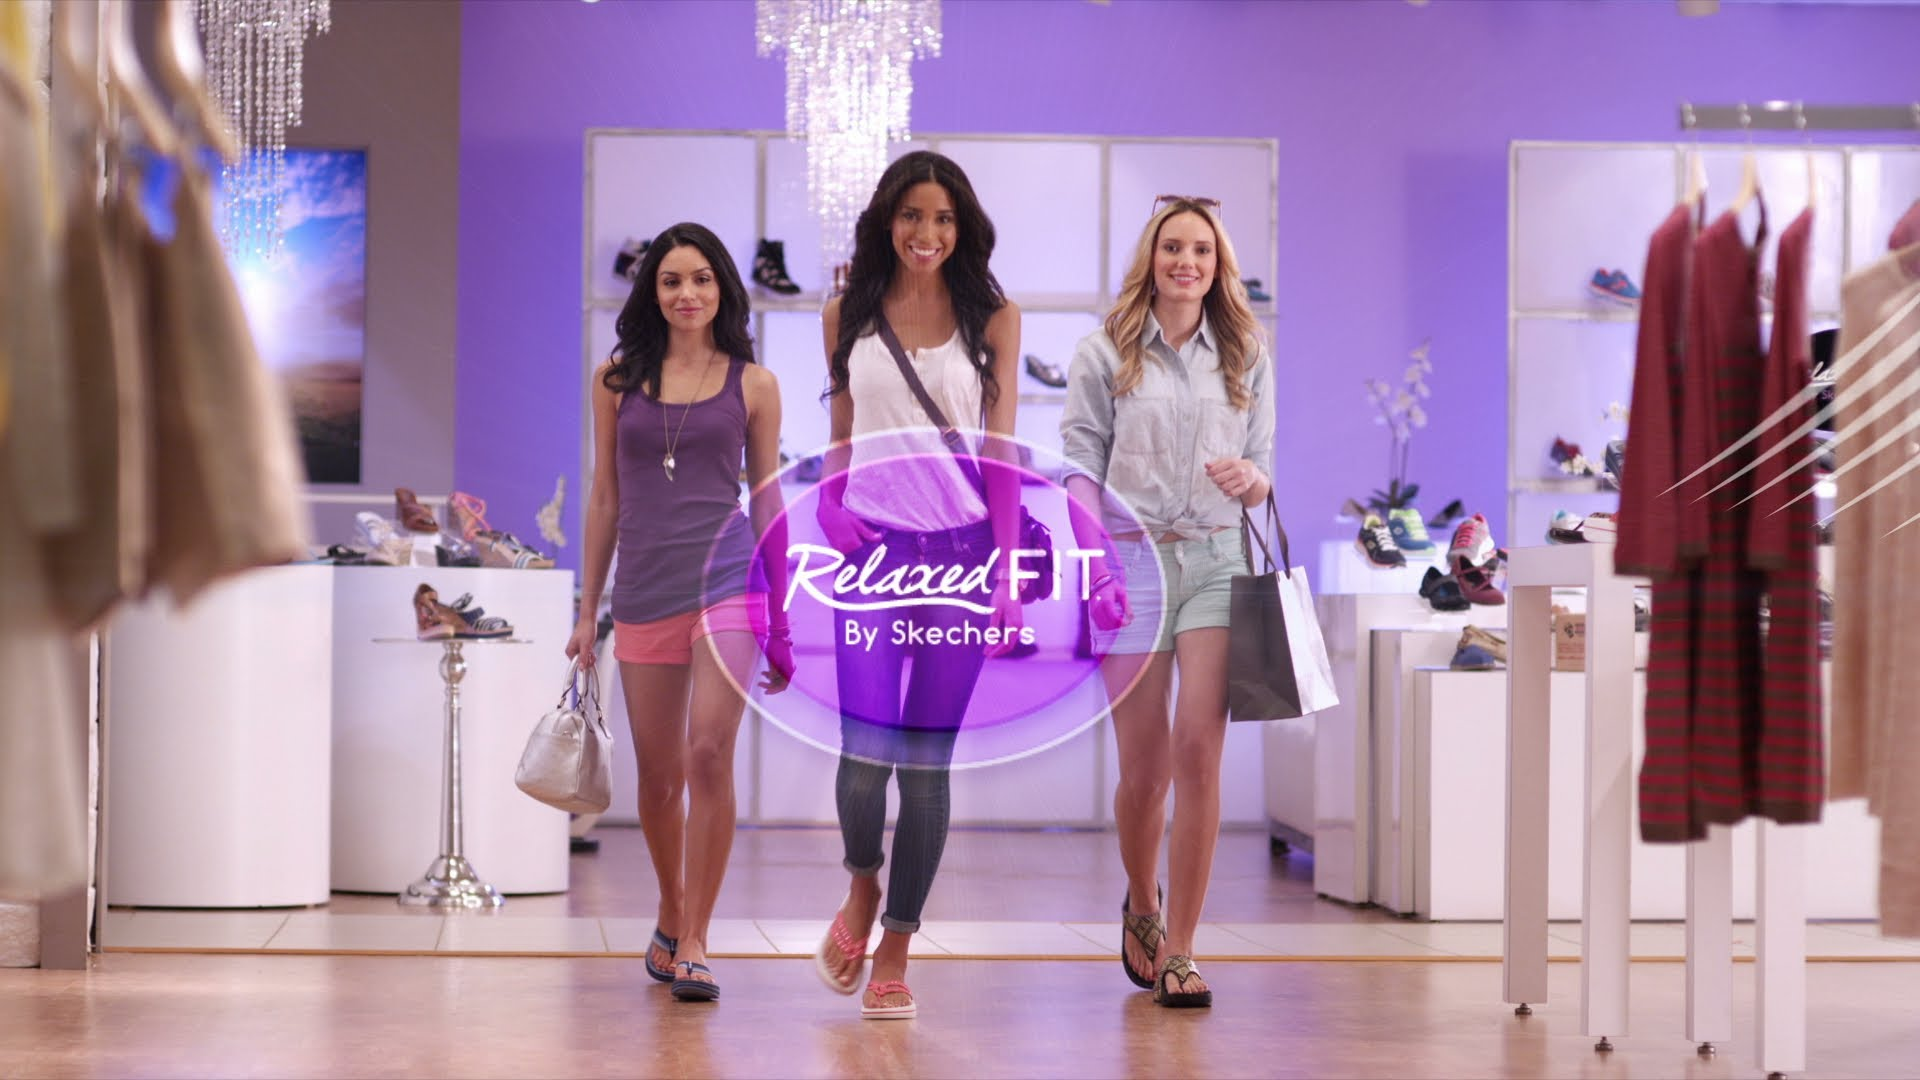 skechers relaxed fit commercial